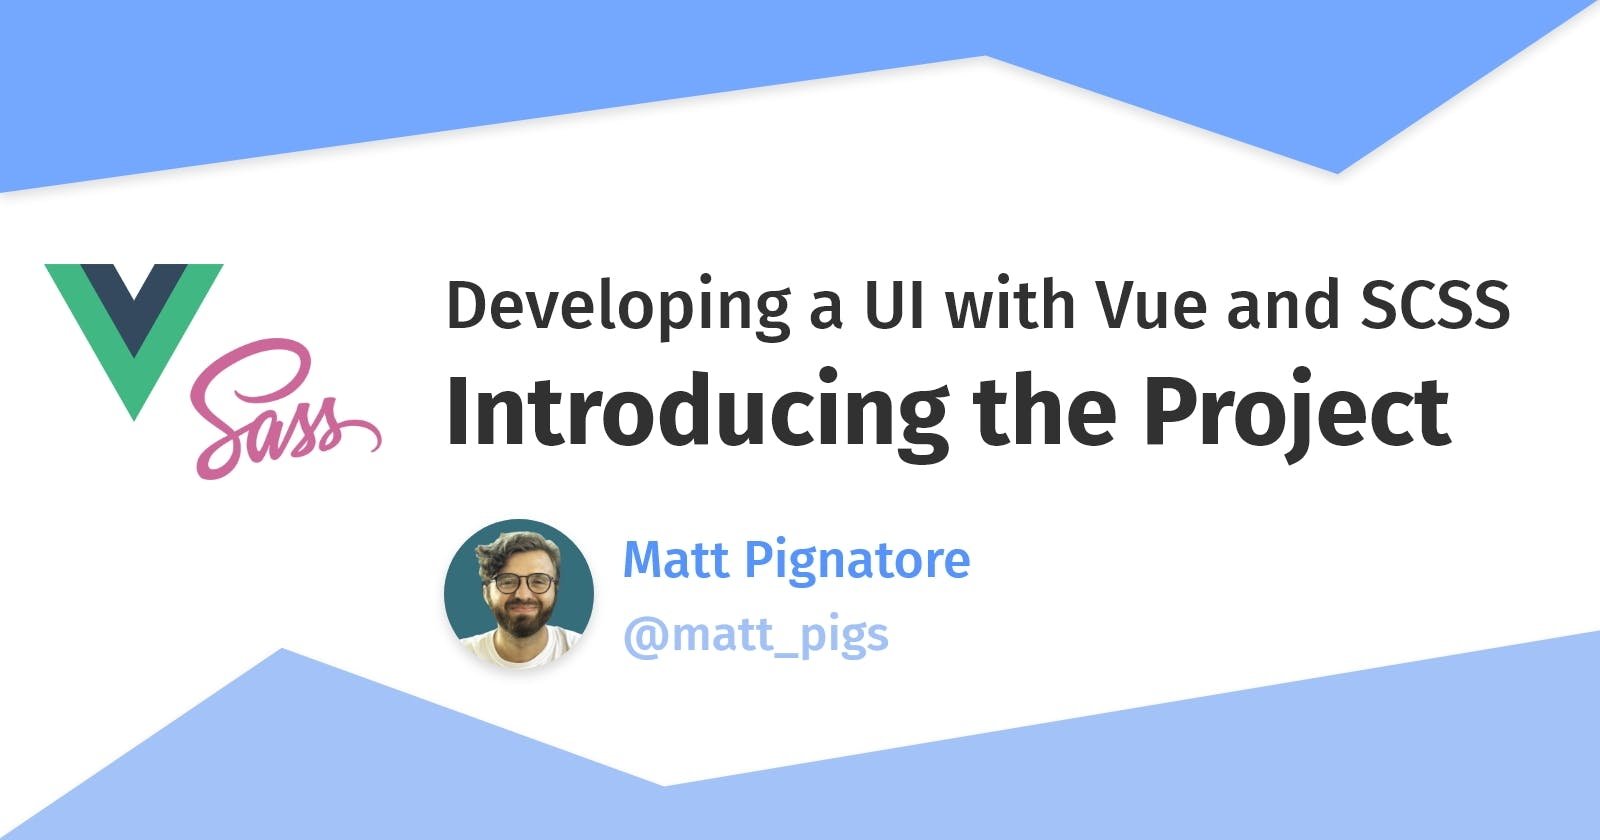 Developing a UI with Vue, Part 1: Introducing the Project